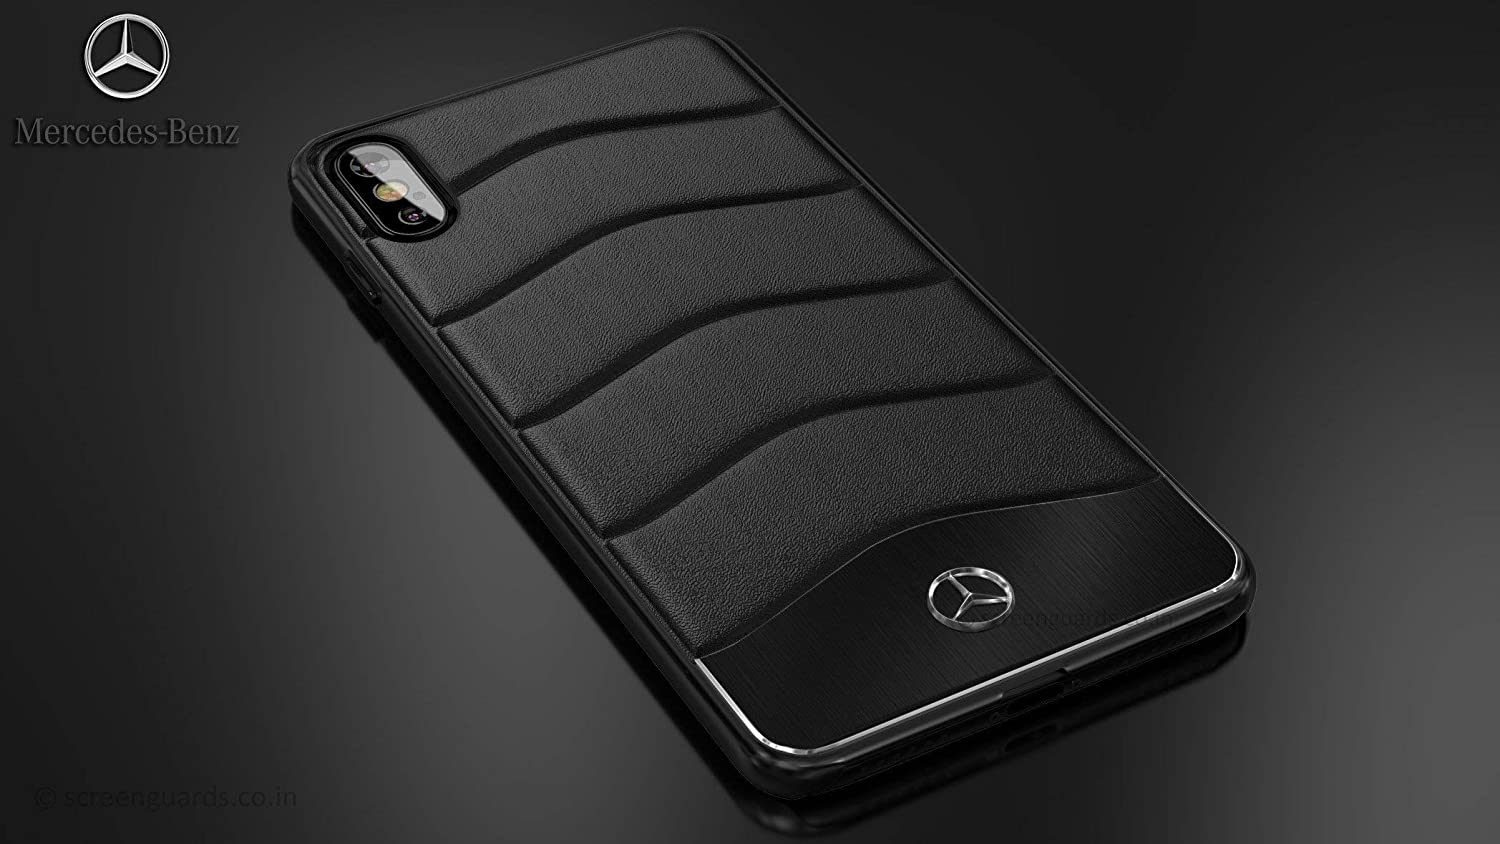 outlet store sale d11bb d6464 Mercedes Benz ® Apple iPhone Xs Concept S Coupe Series Electroplated Metal  + Leather Hard Case Back Cover for Apple iPhone Xs (Black)